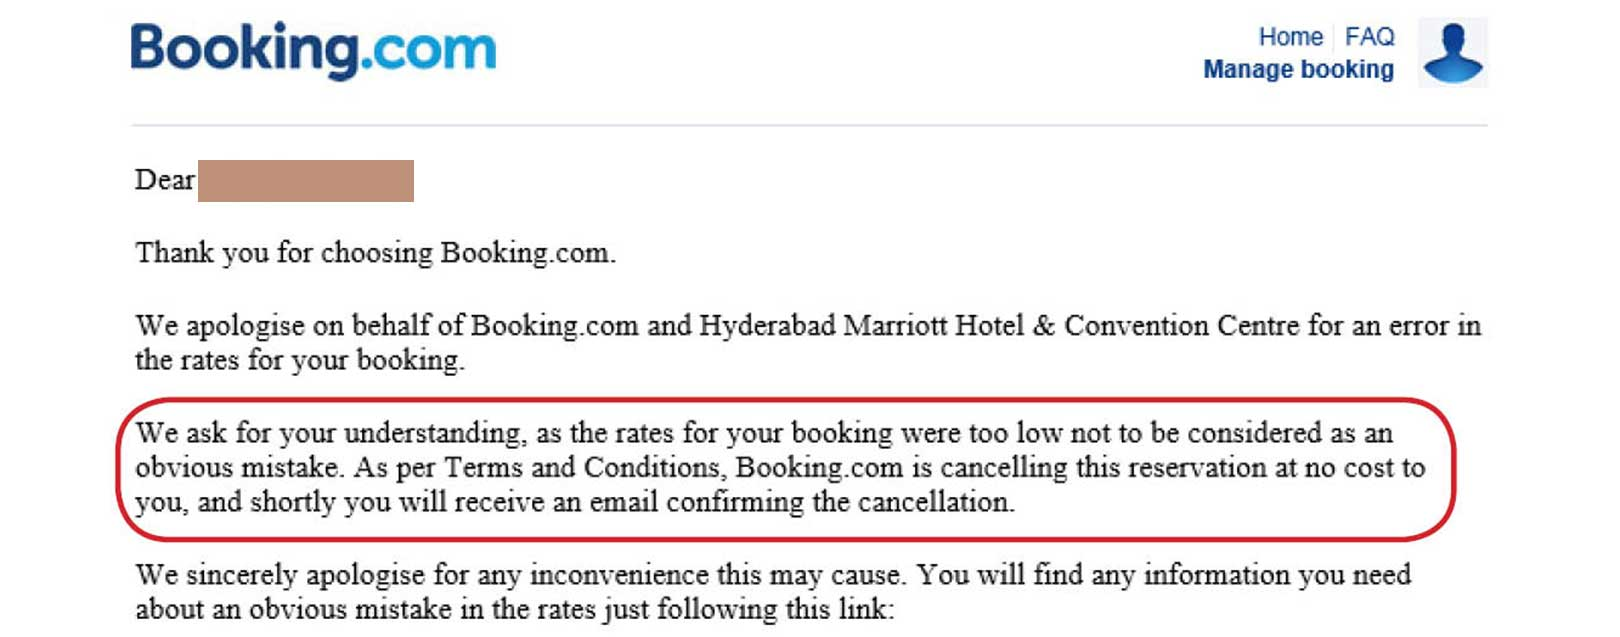 Not all hotels are free cancellation. You'll need to contact both and check booking agreements. I got my money back when it happened to me as it turned out exehalo.gq had failed to make it clear about cancellation fees - it should have said fees applied for cancellation and it didn't.